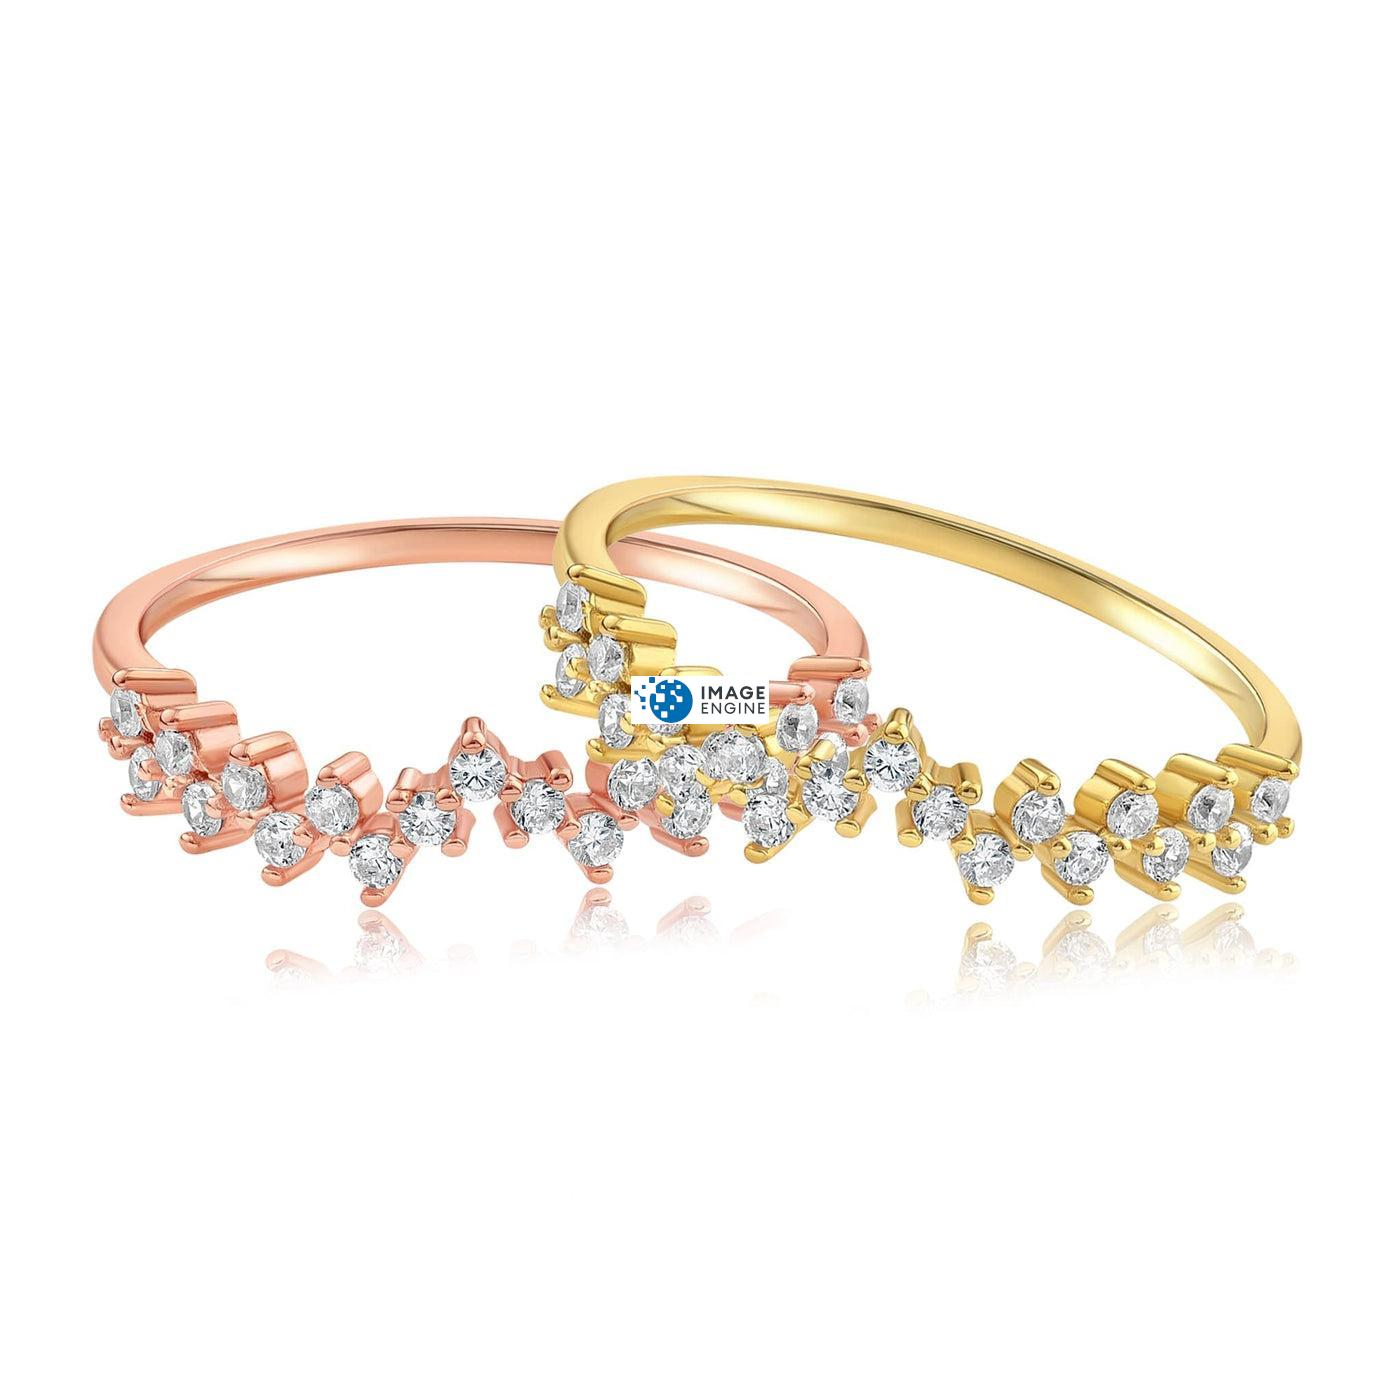 Esther Petite Cluster Ring - Front View Side by Side - 18K Rose Gold Vermeil and 18K Yellow Gold Vermeil